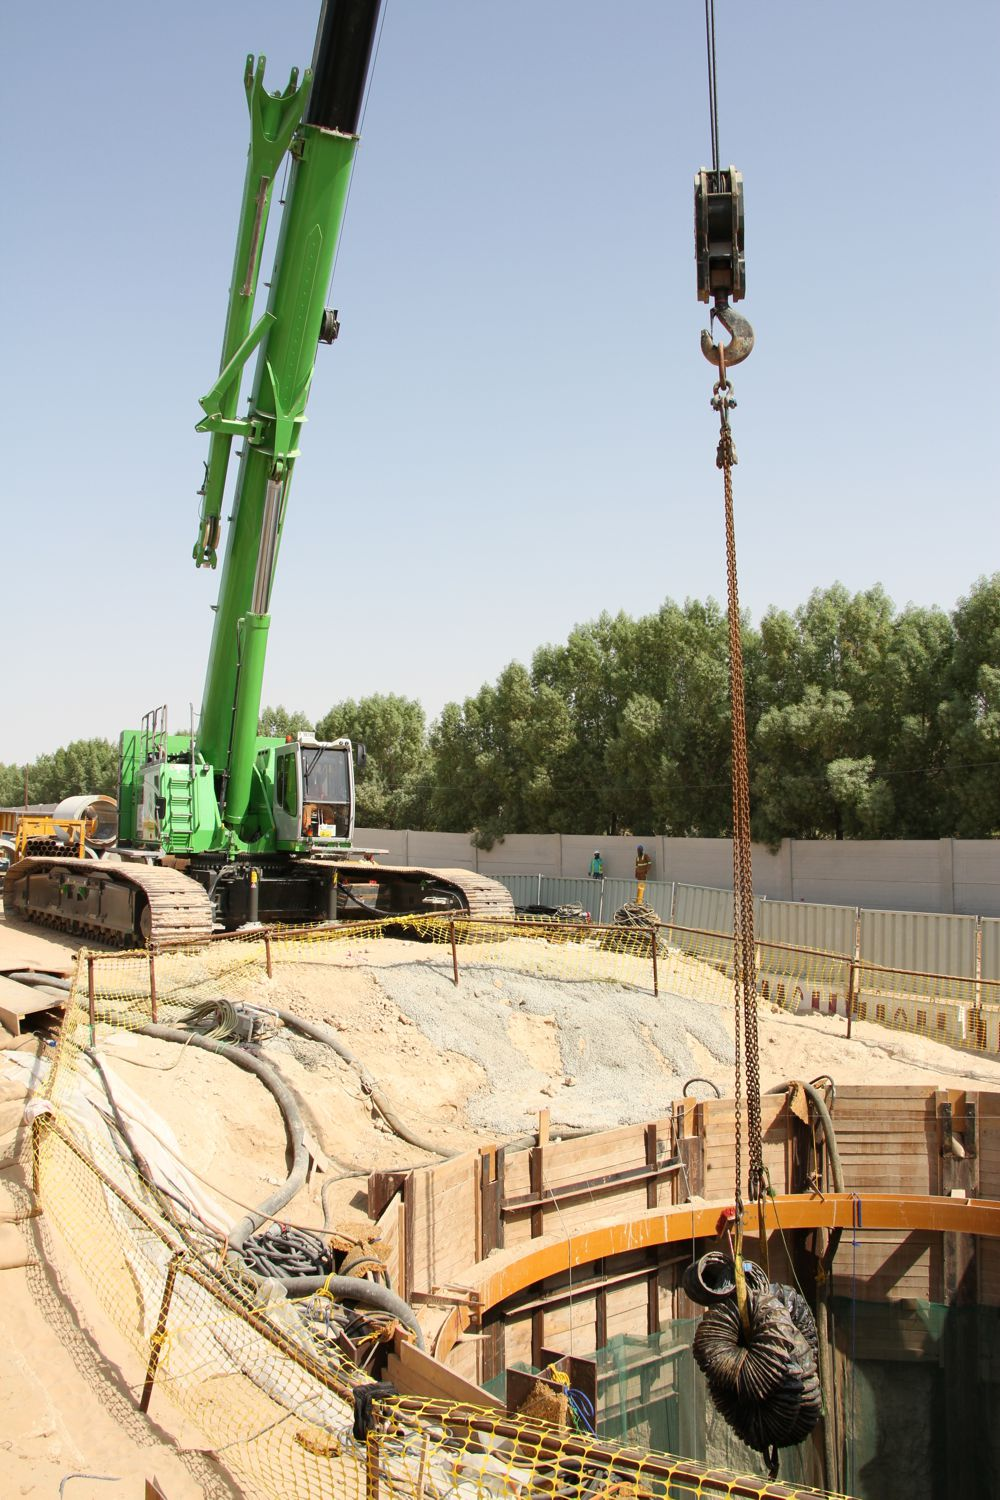 The crane lowers the 30 ton drill unit and the pipe sections into the shaft, and takes away the excavated material at the same time.